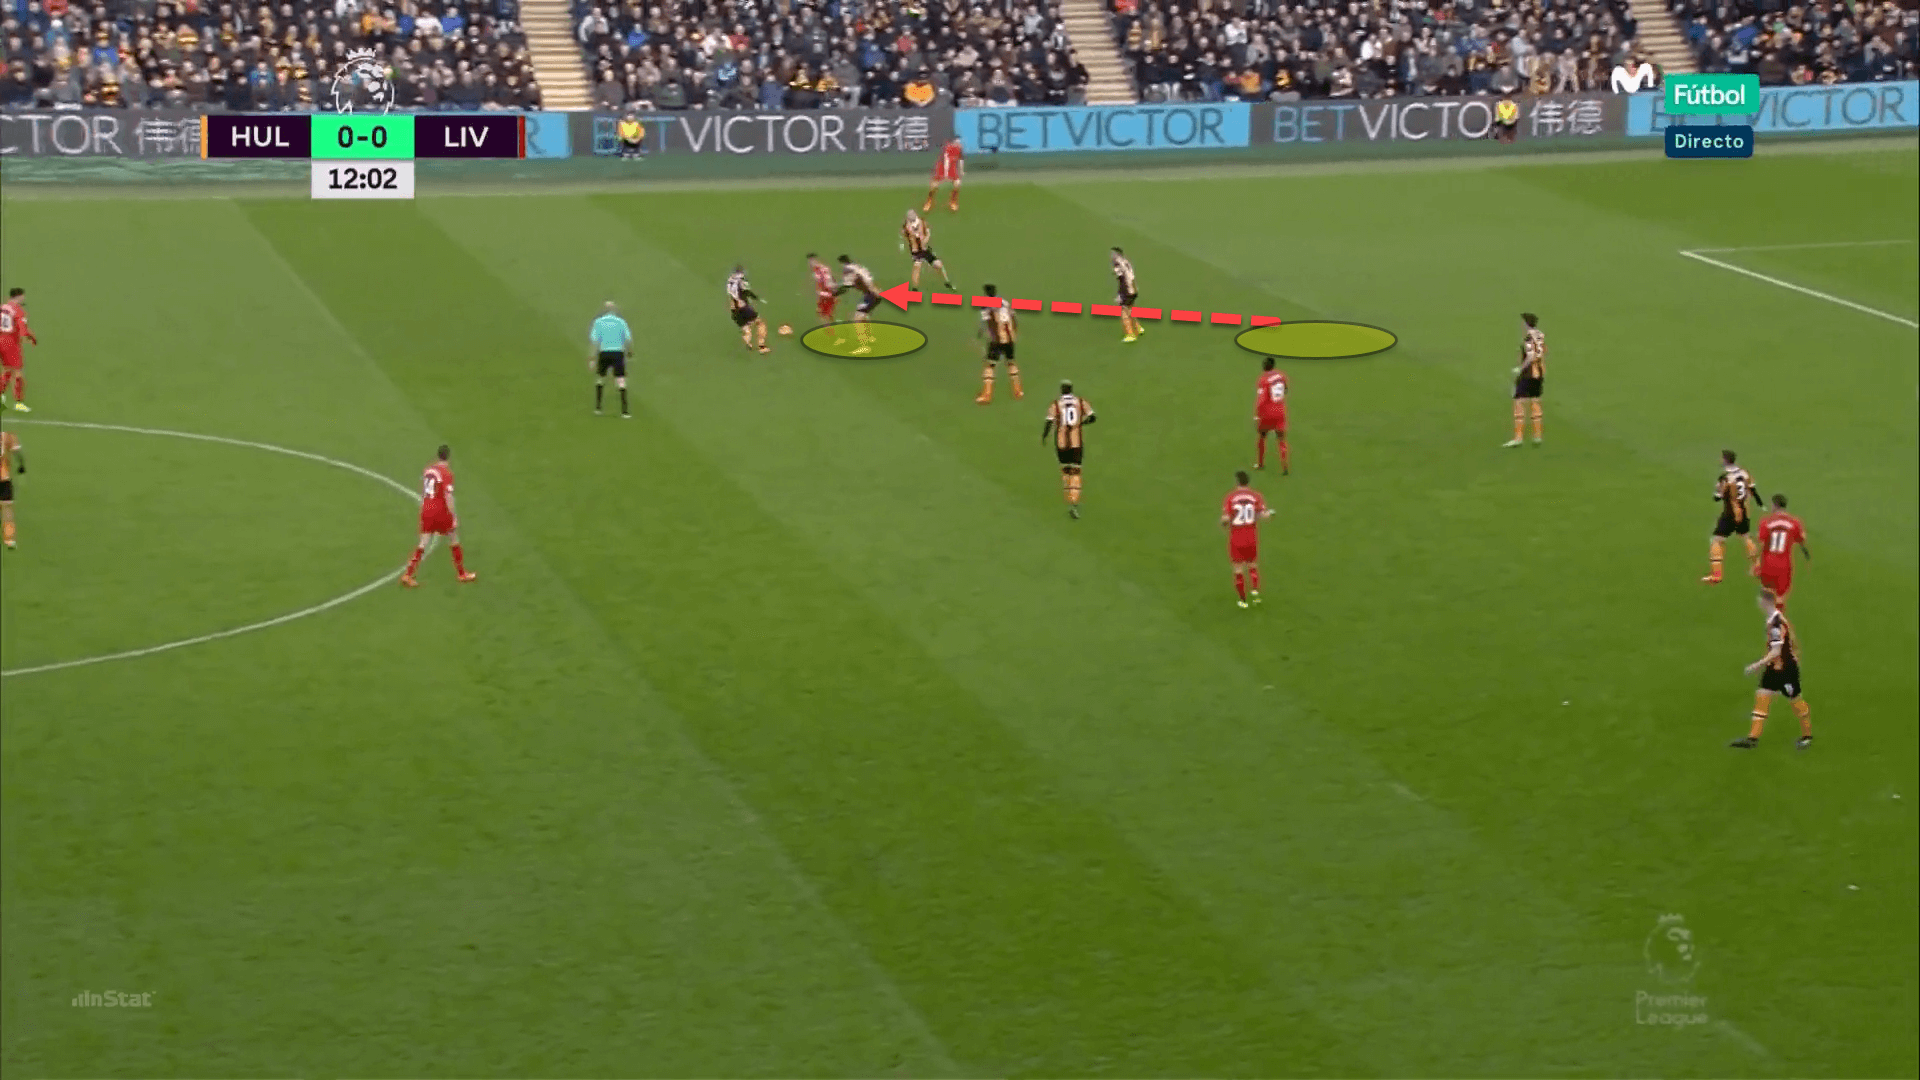 Rapid transitions and vertical possession: How Fulham are likely to set up under Marco Silva - tactical analysis